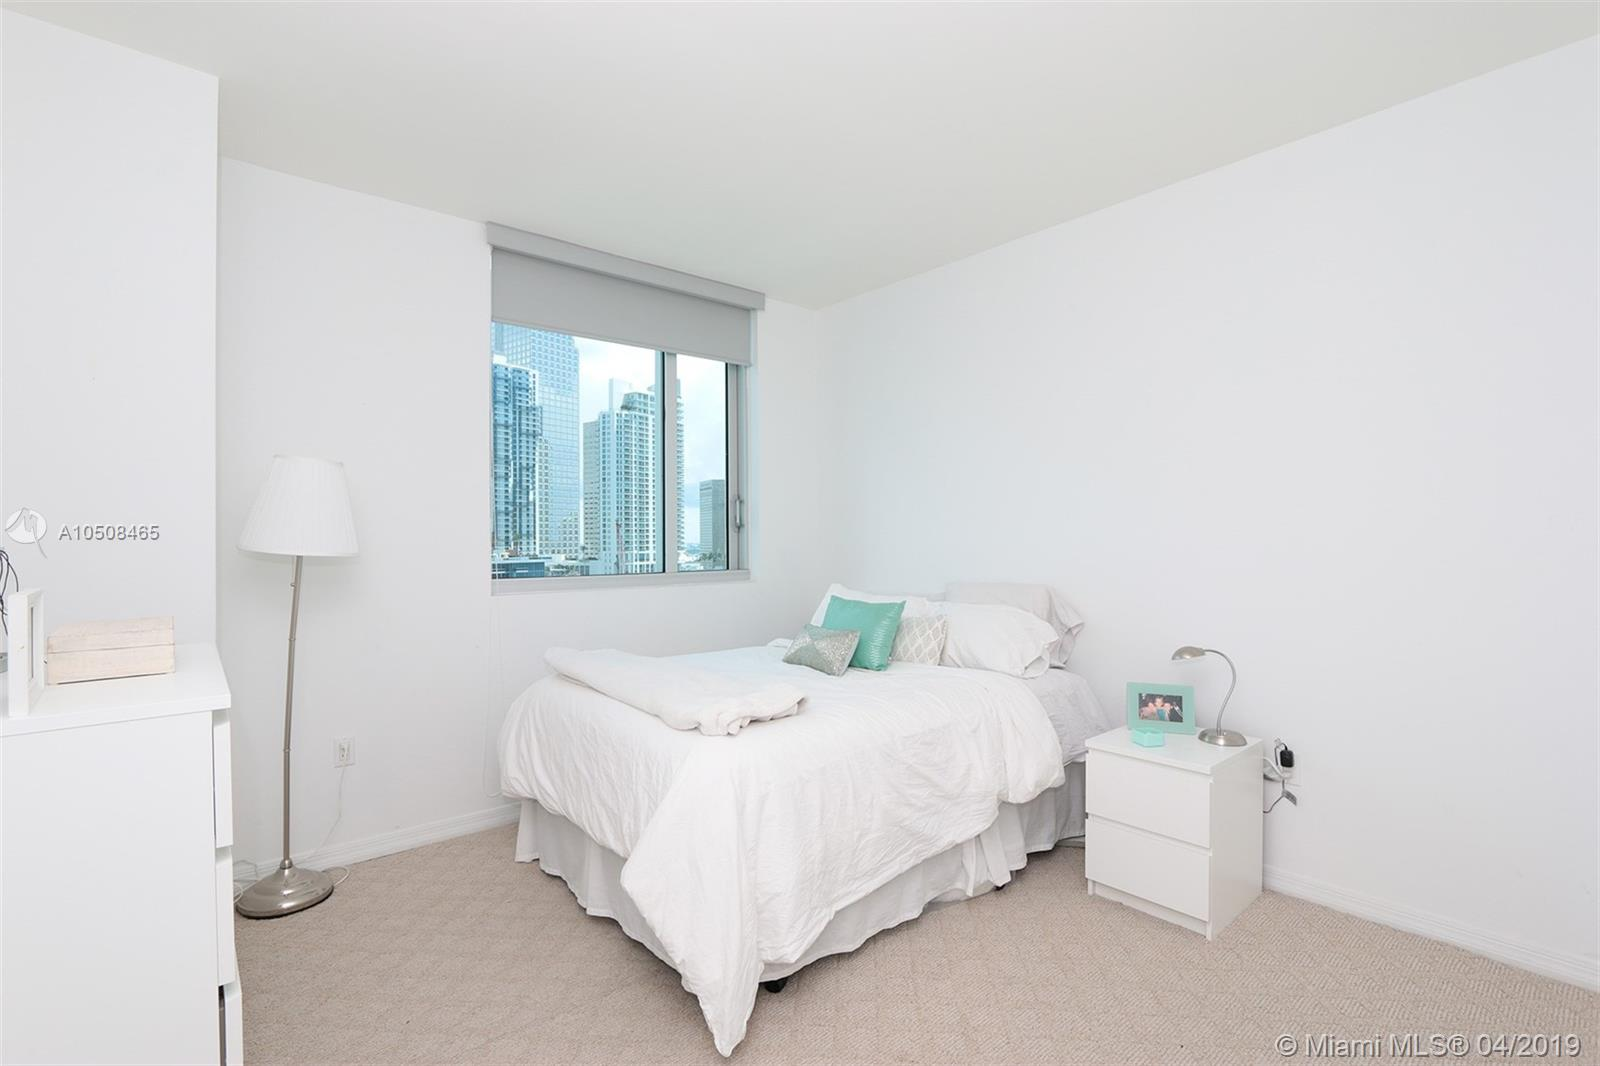 500 Brickell Avenue and 55 SE 6 Street, Miami, FL 33131, 500 Brickell #1801, Brickell, Miami A10508465 image #15